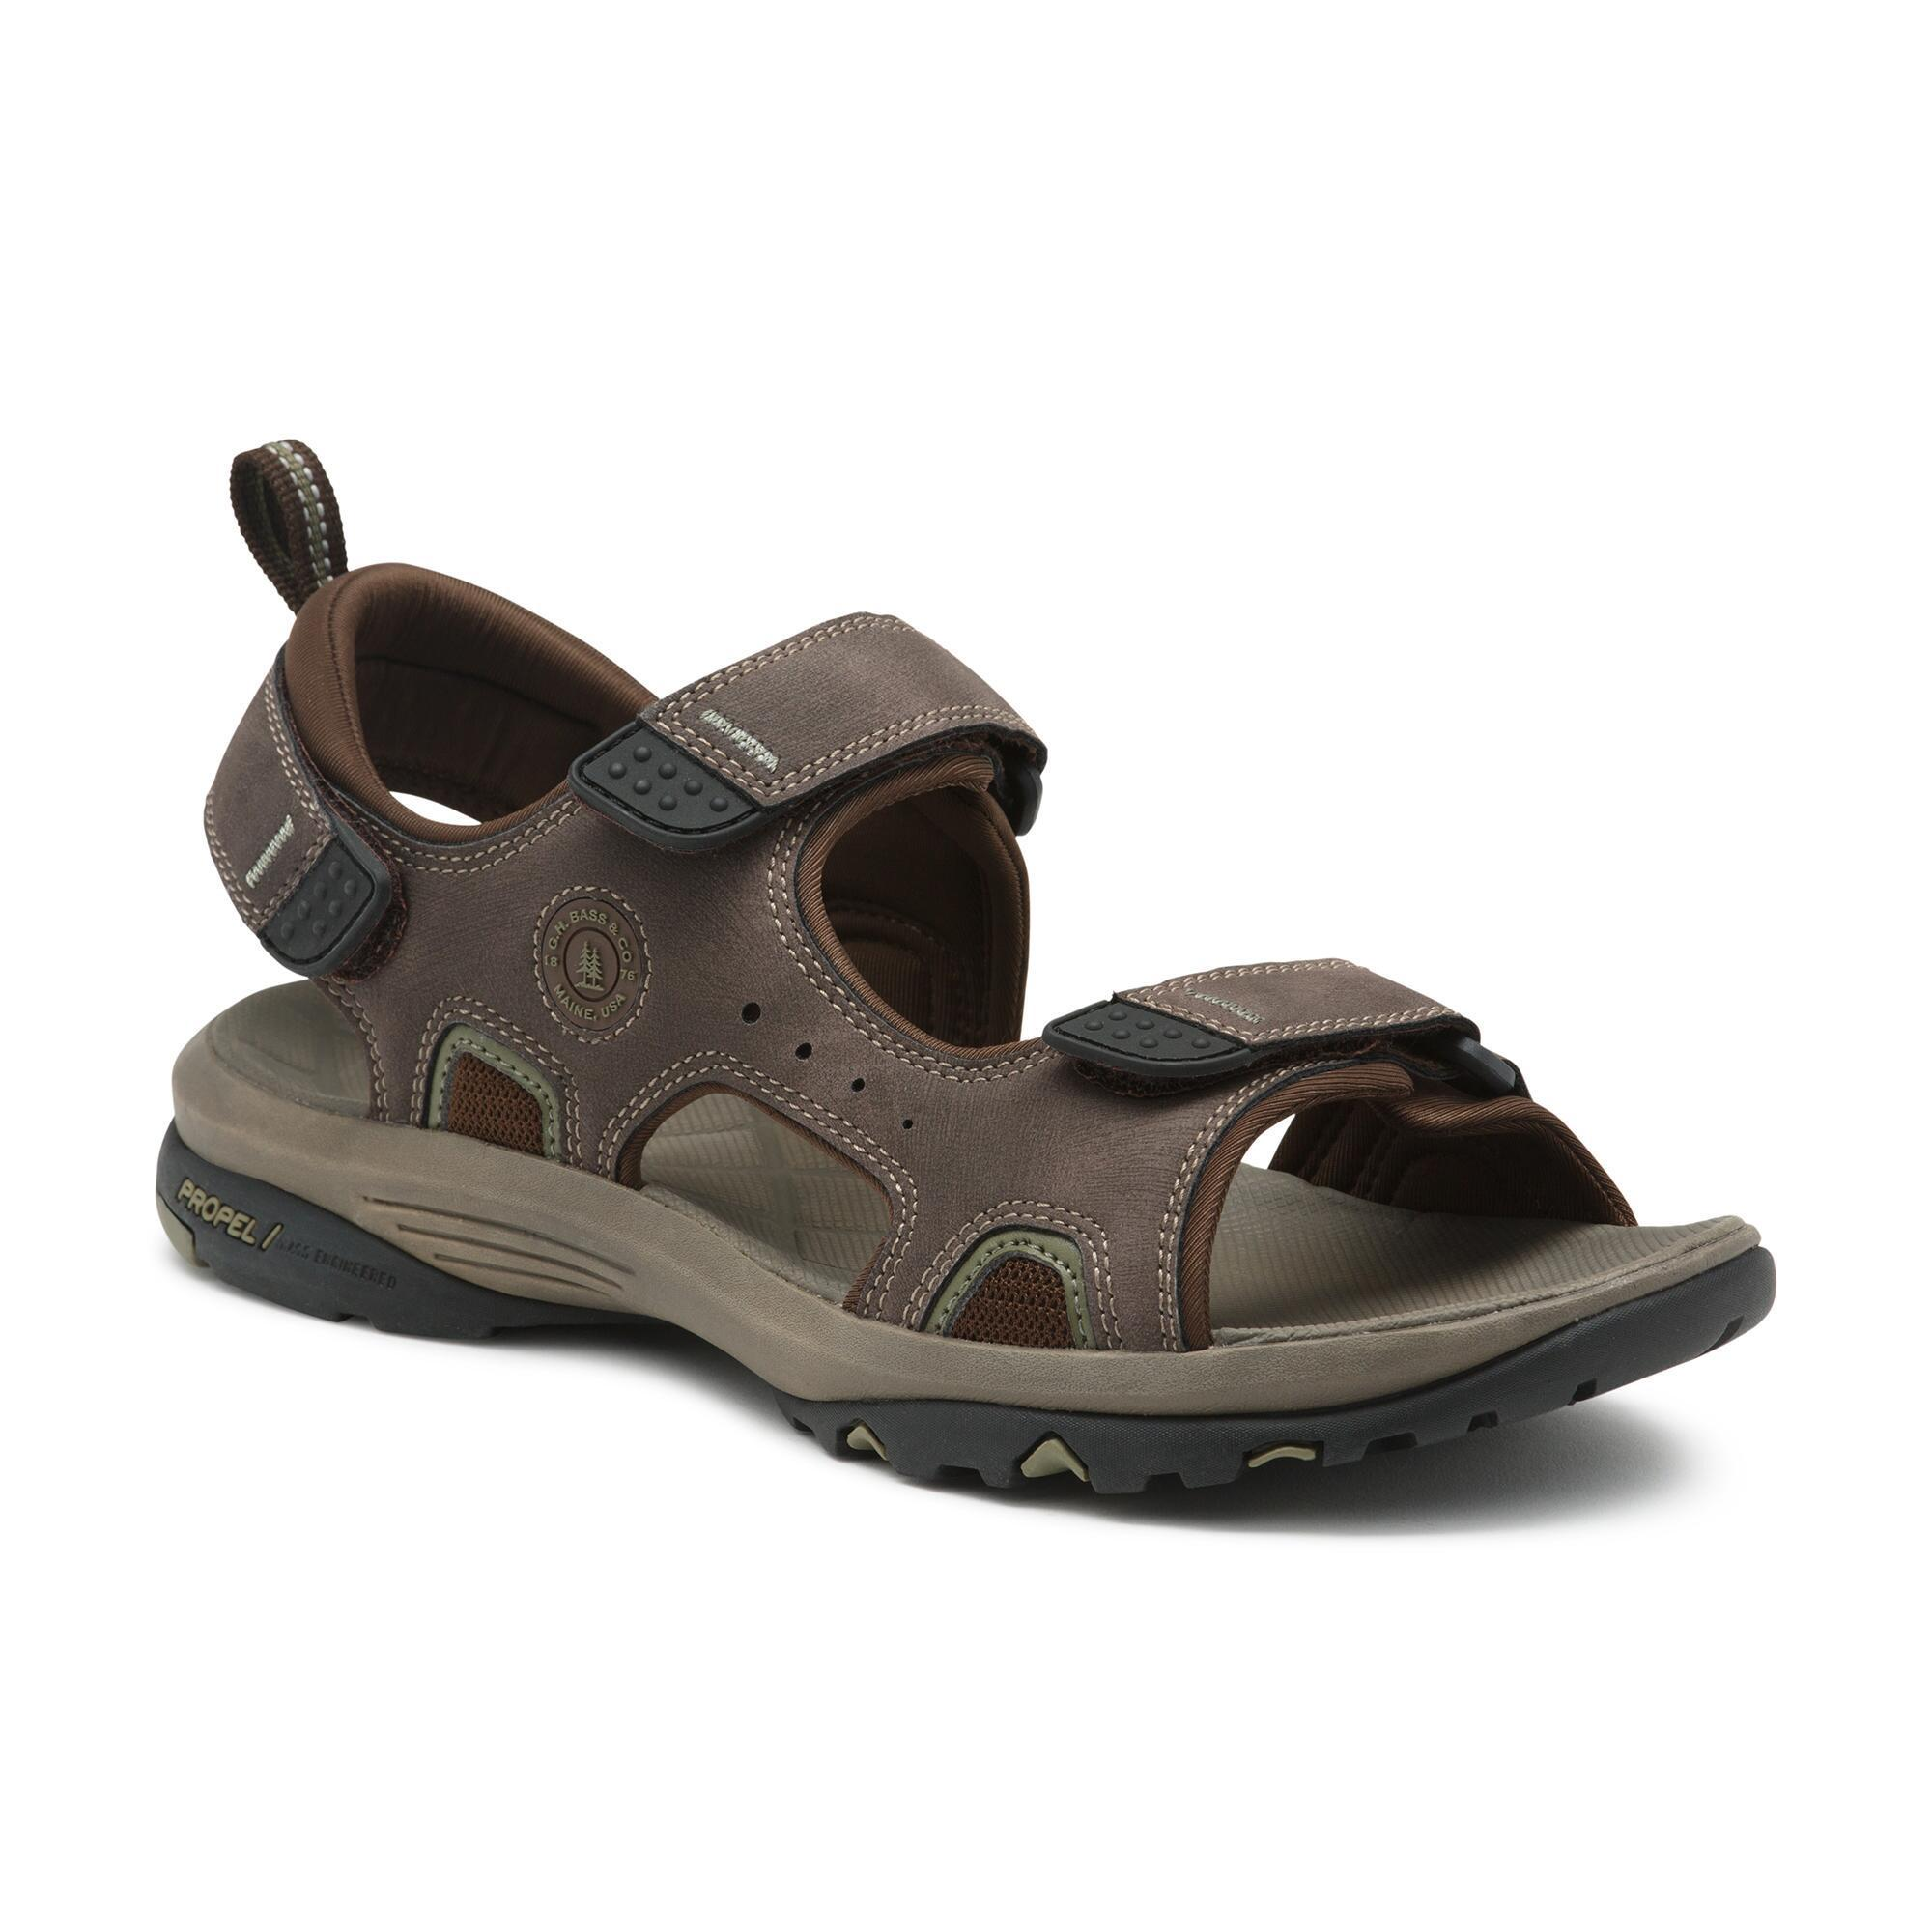 Bass Shoes Mens Sandals